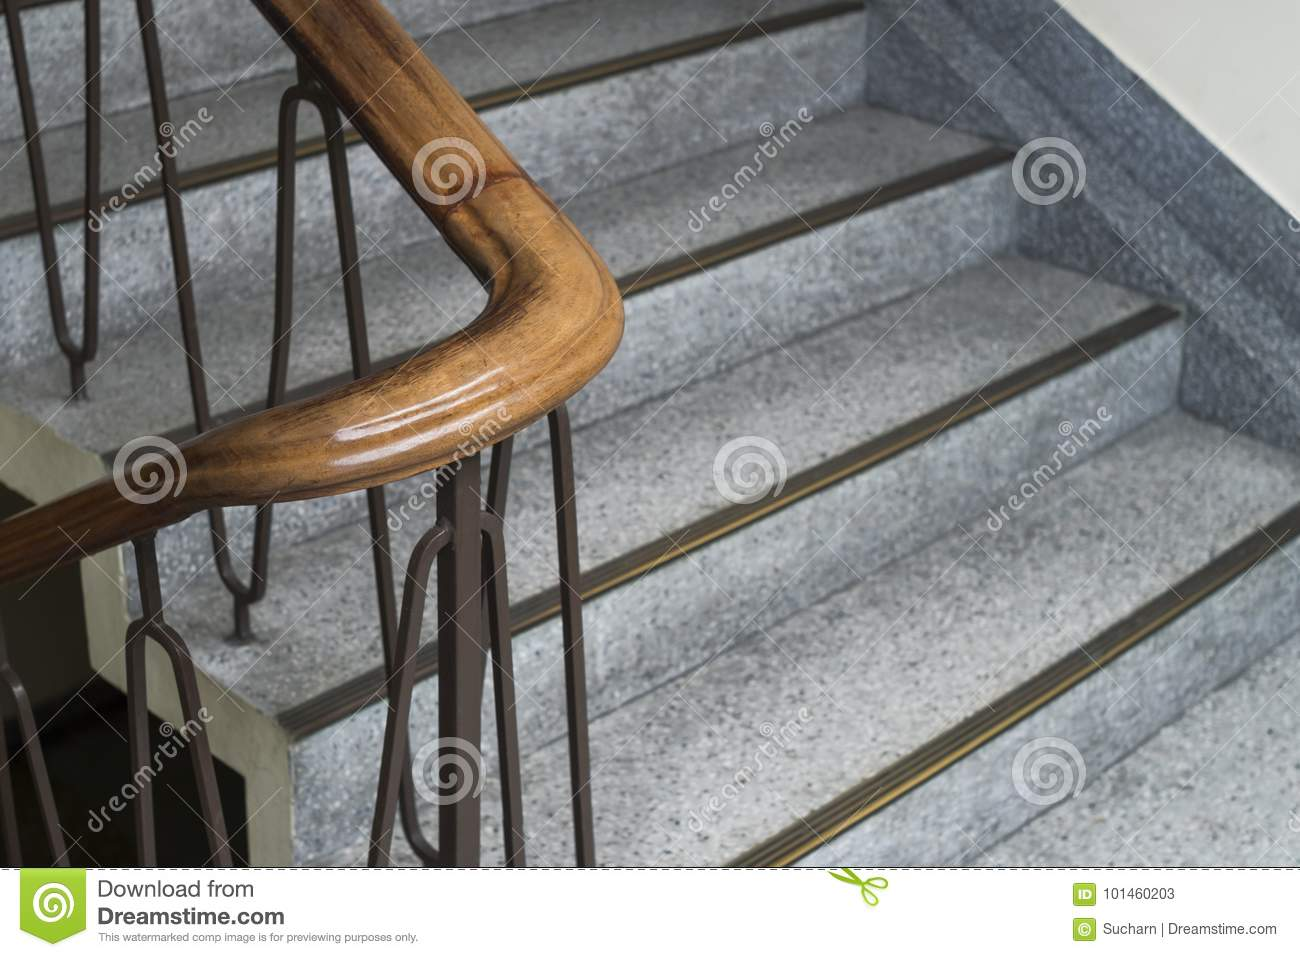 Download Close Up Shot Of Vintage Staircase In Minimal Style. Stock Image    Image Of